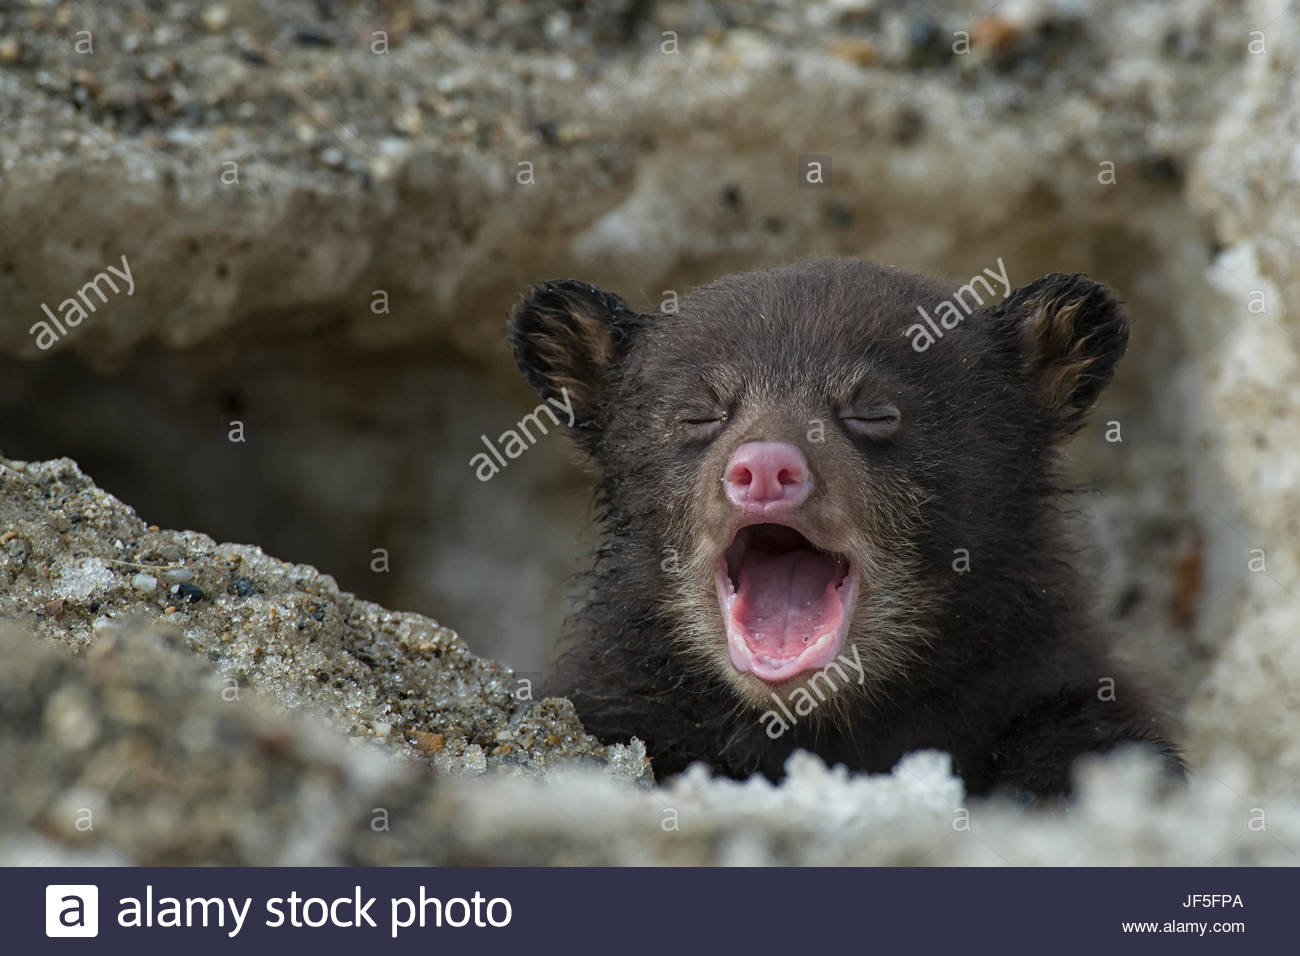 A weeks-old black bear cub crying as it comes out of its den for the first time. Stock Photo